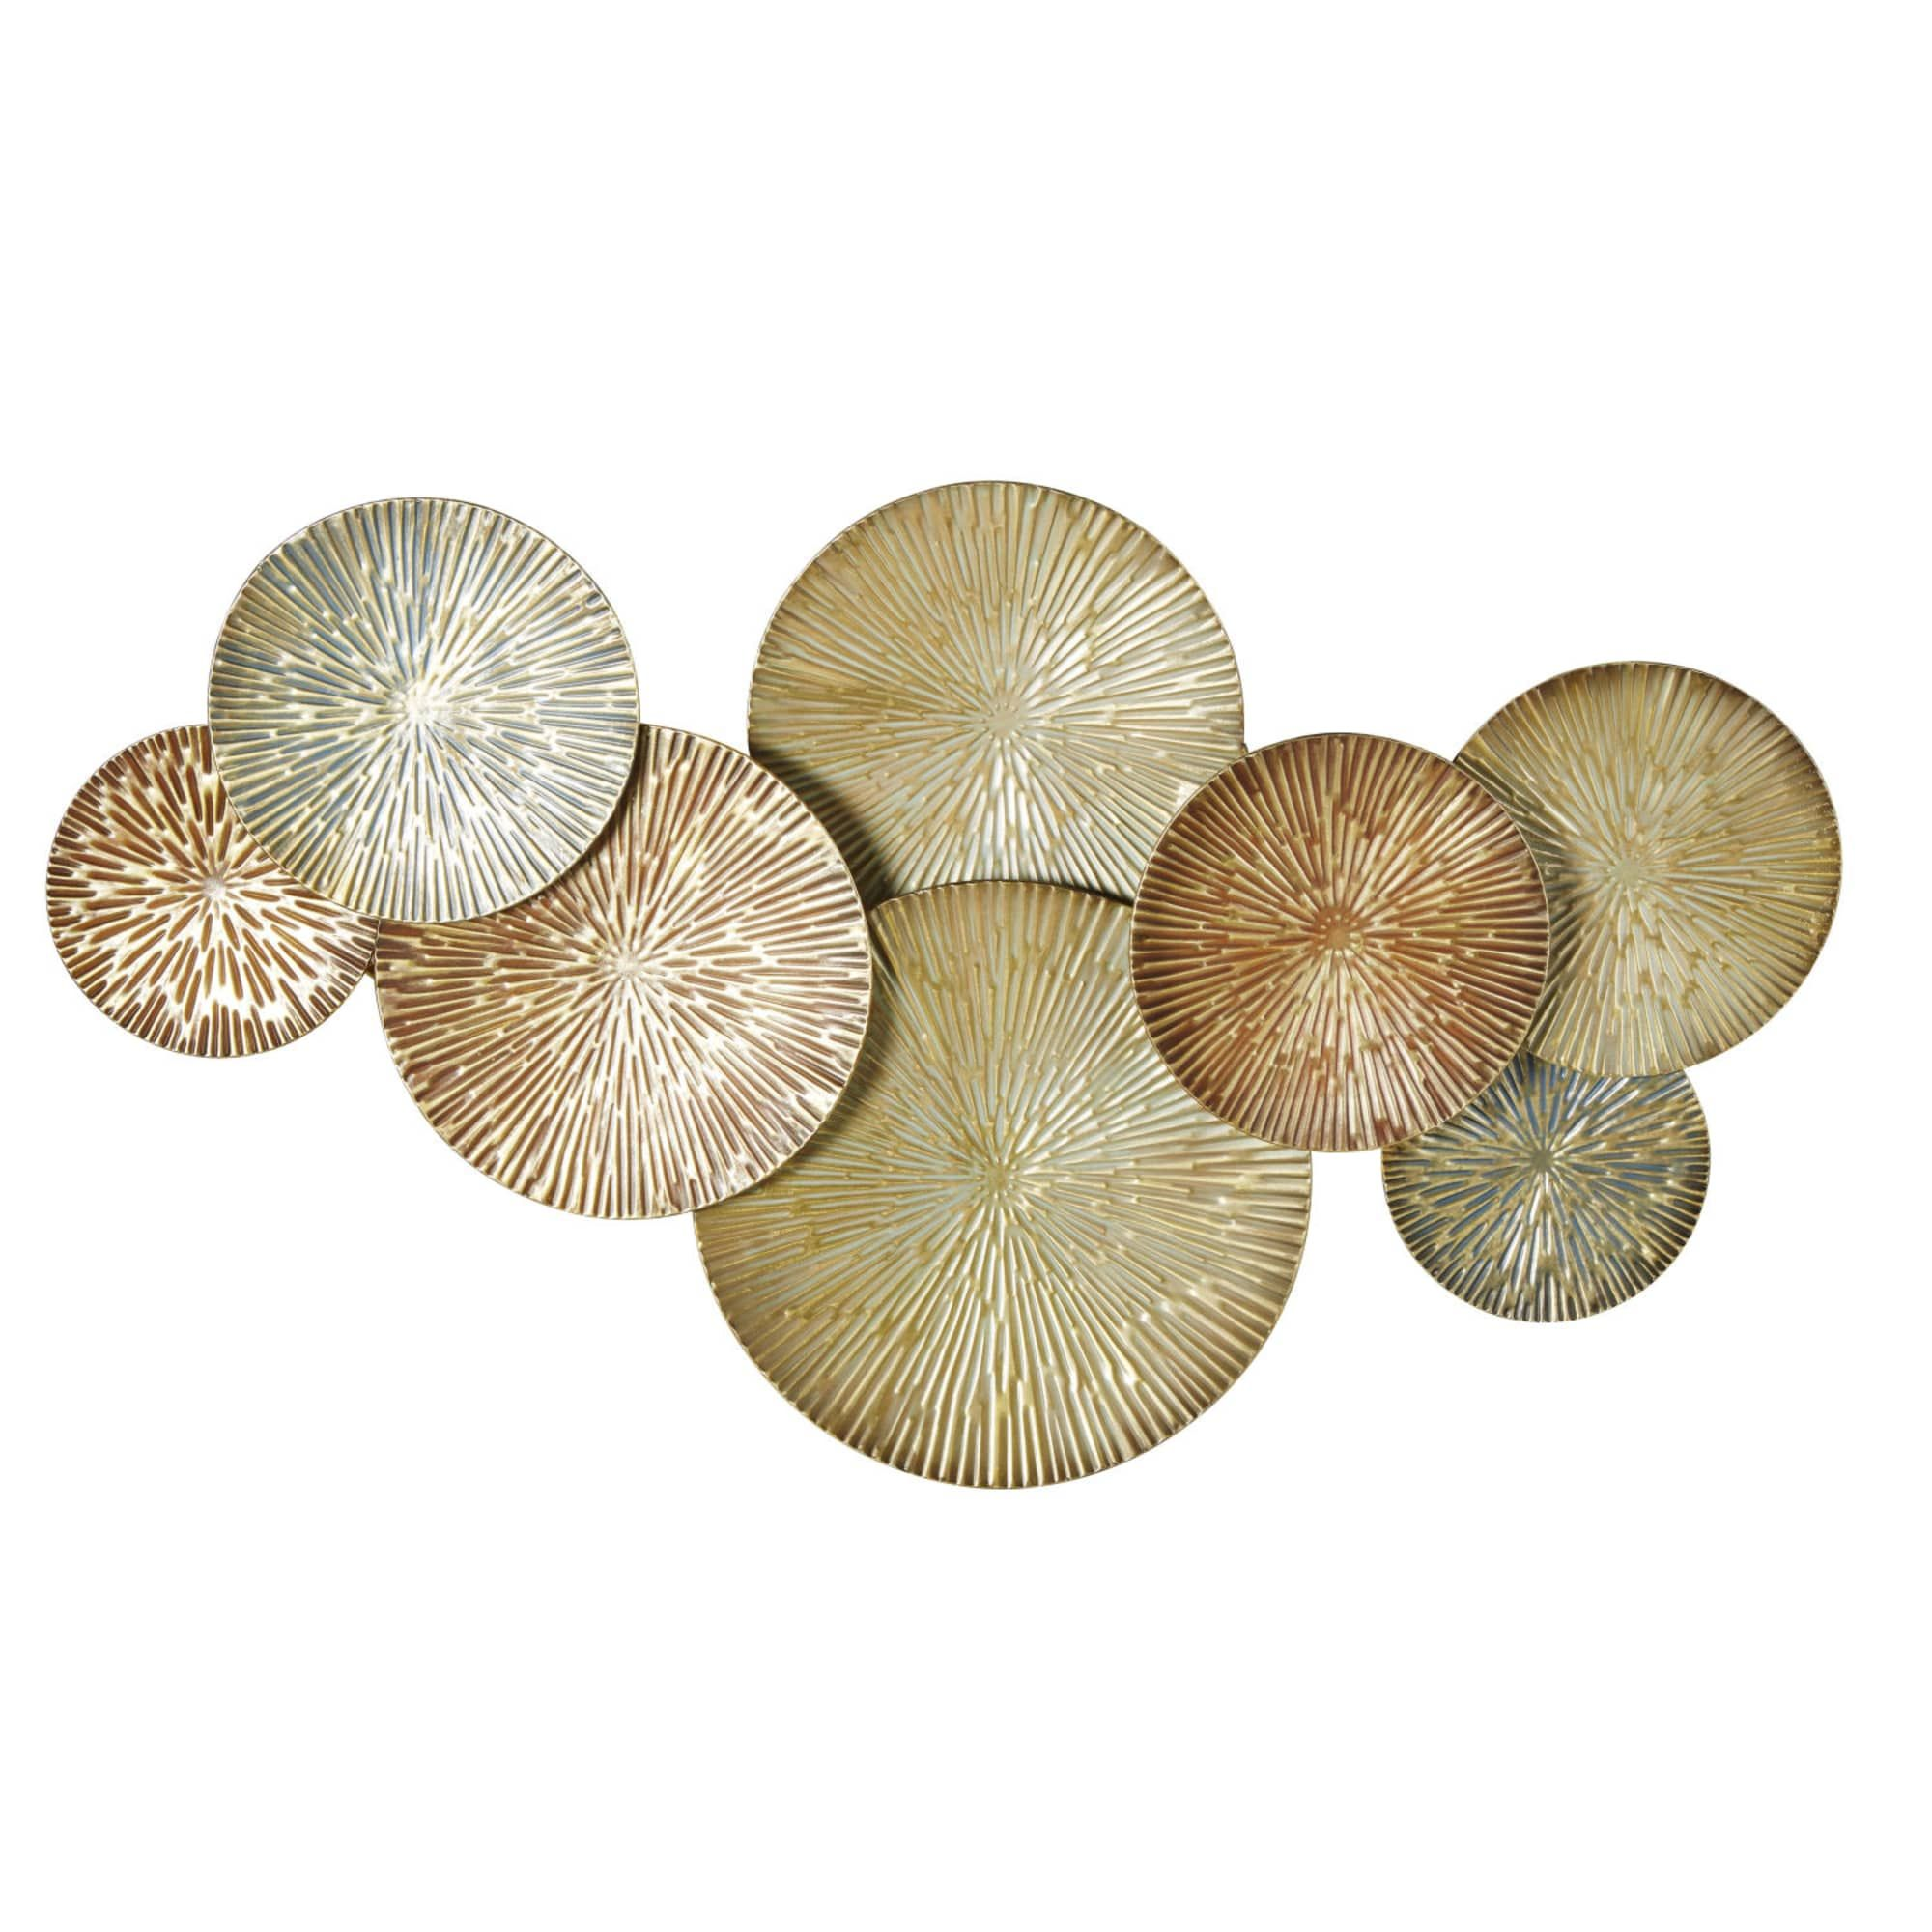 Gold and Brown Metal Wall Art 141x82 in 2020   Gold metal ...